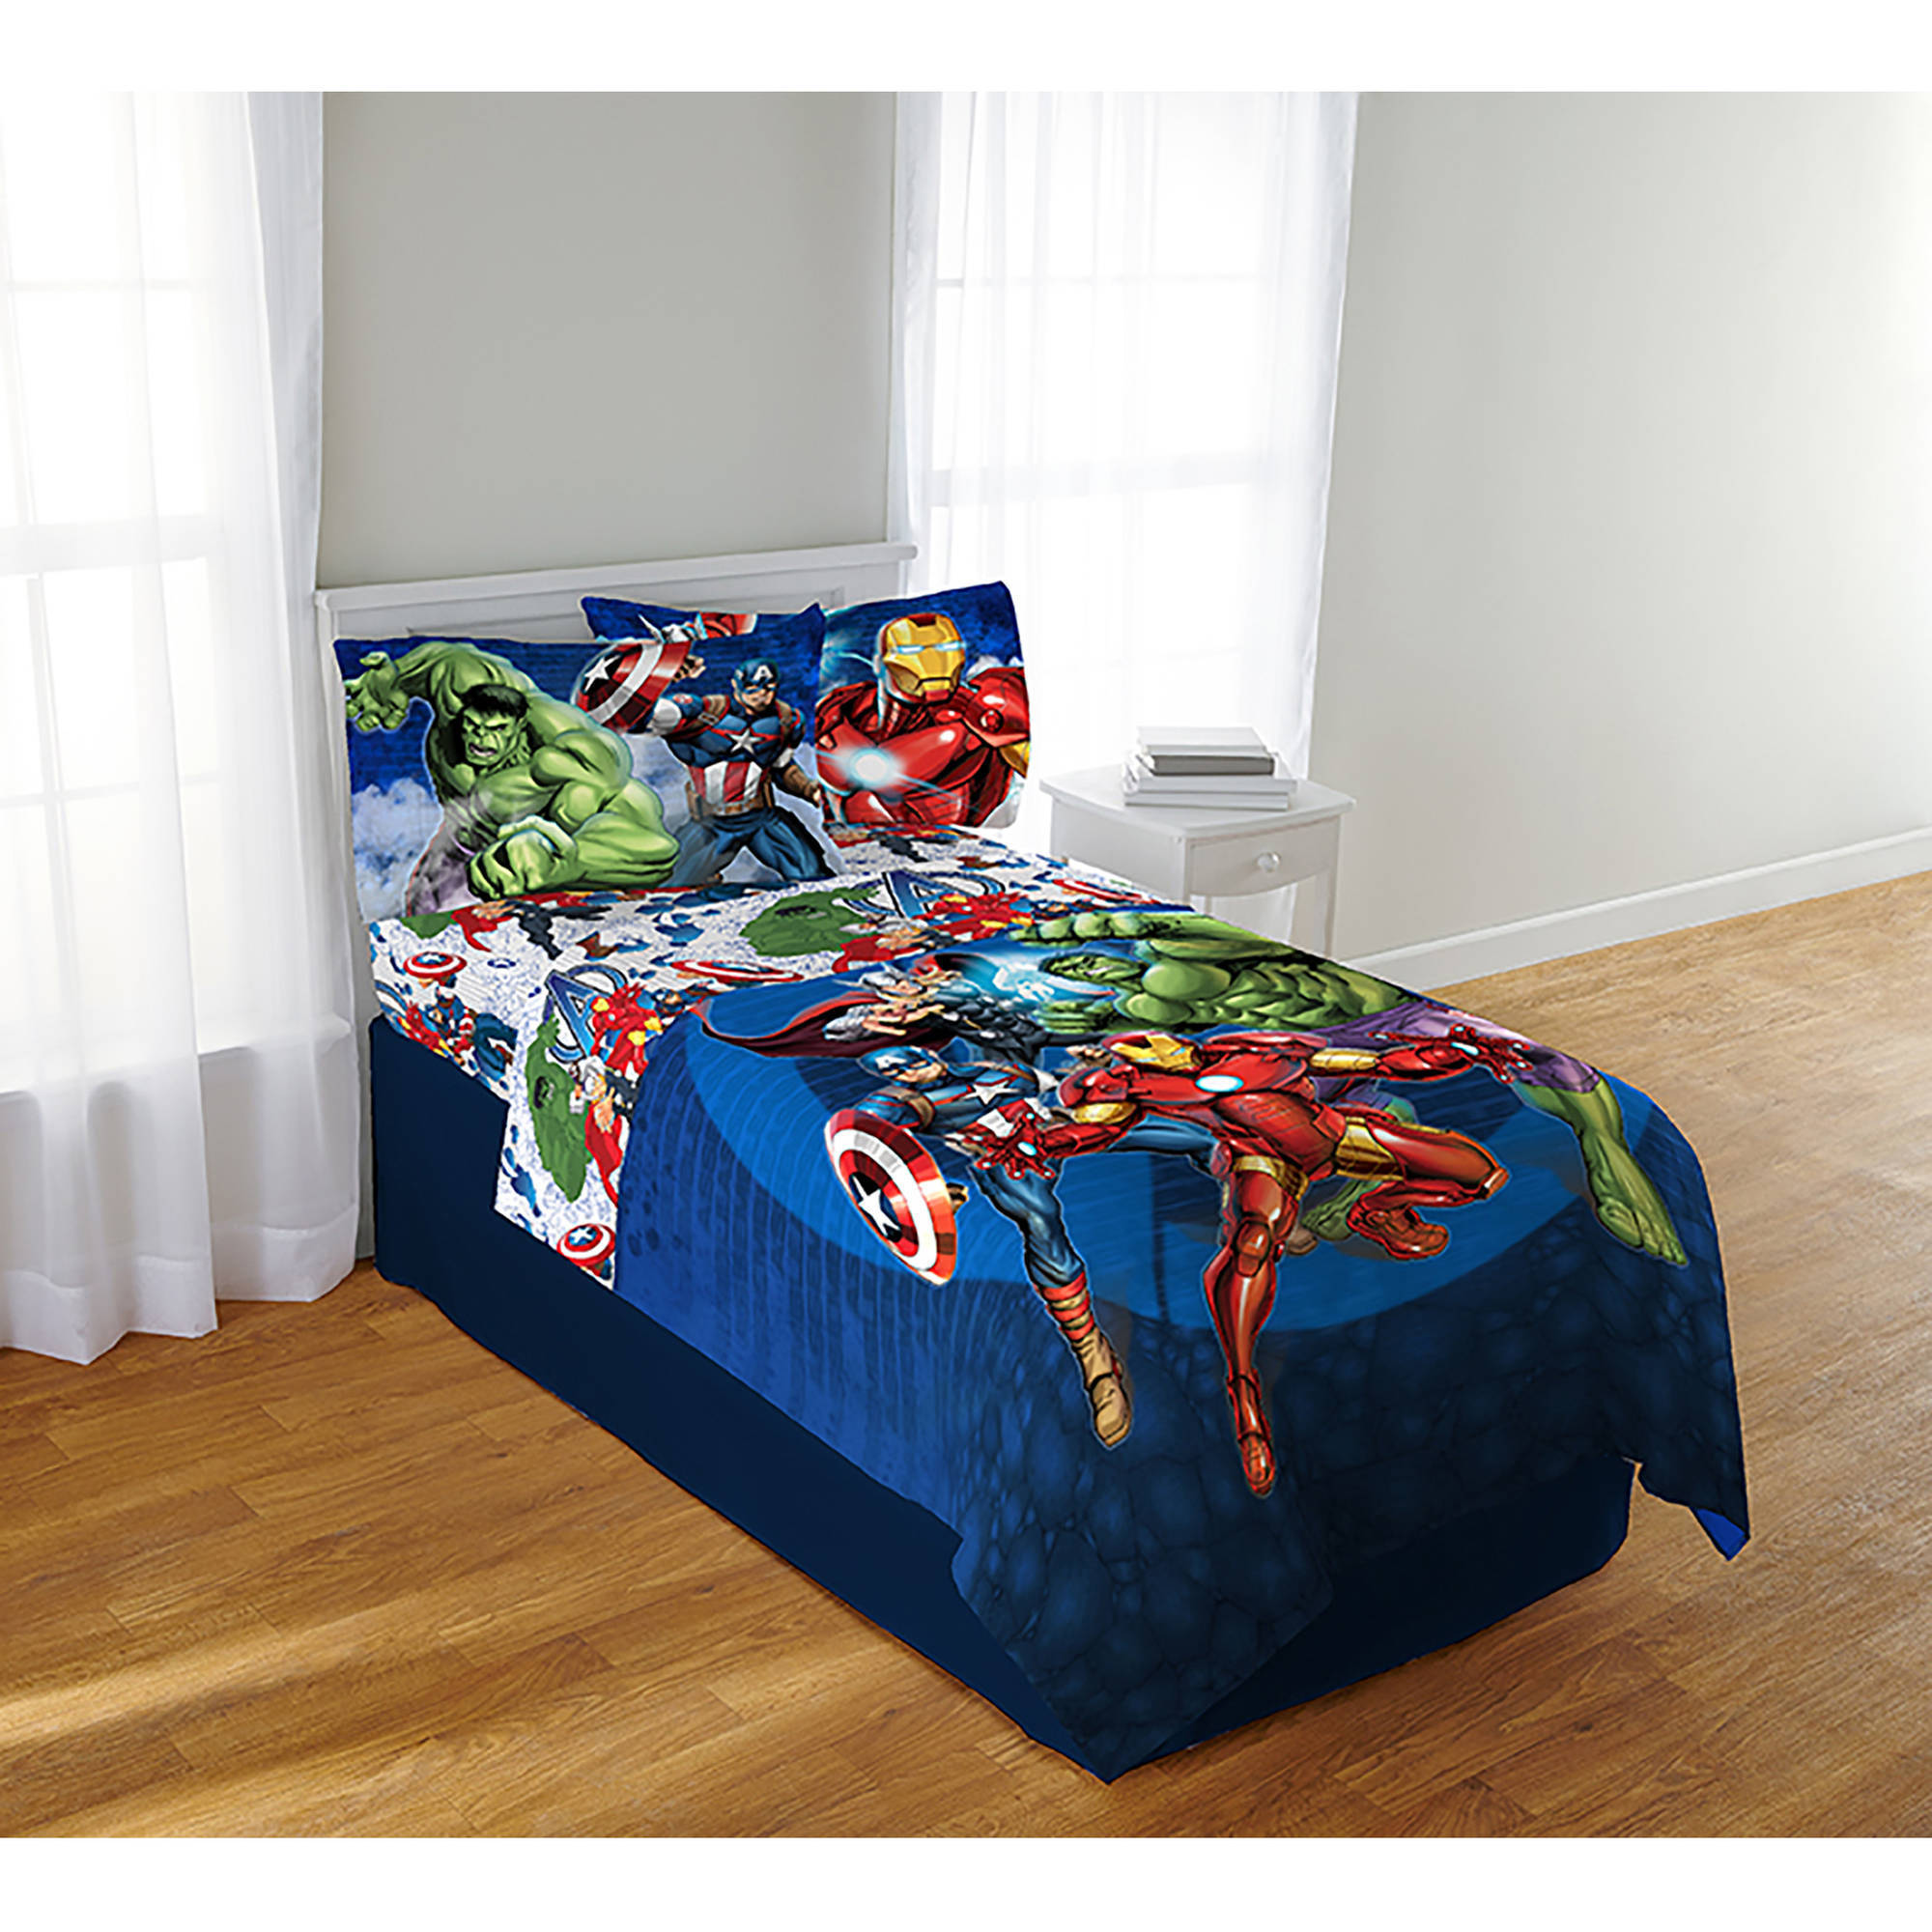 Avengers Blue Circle Bedding Sheet Set, Twin/Full